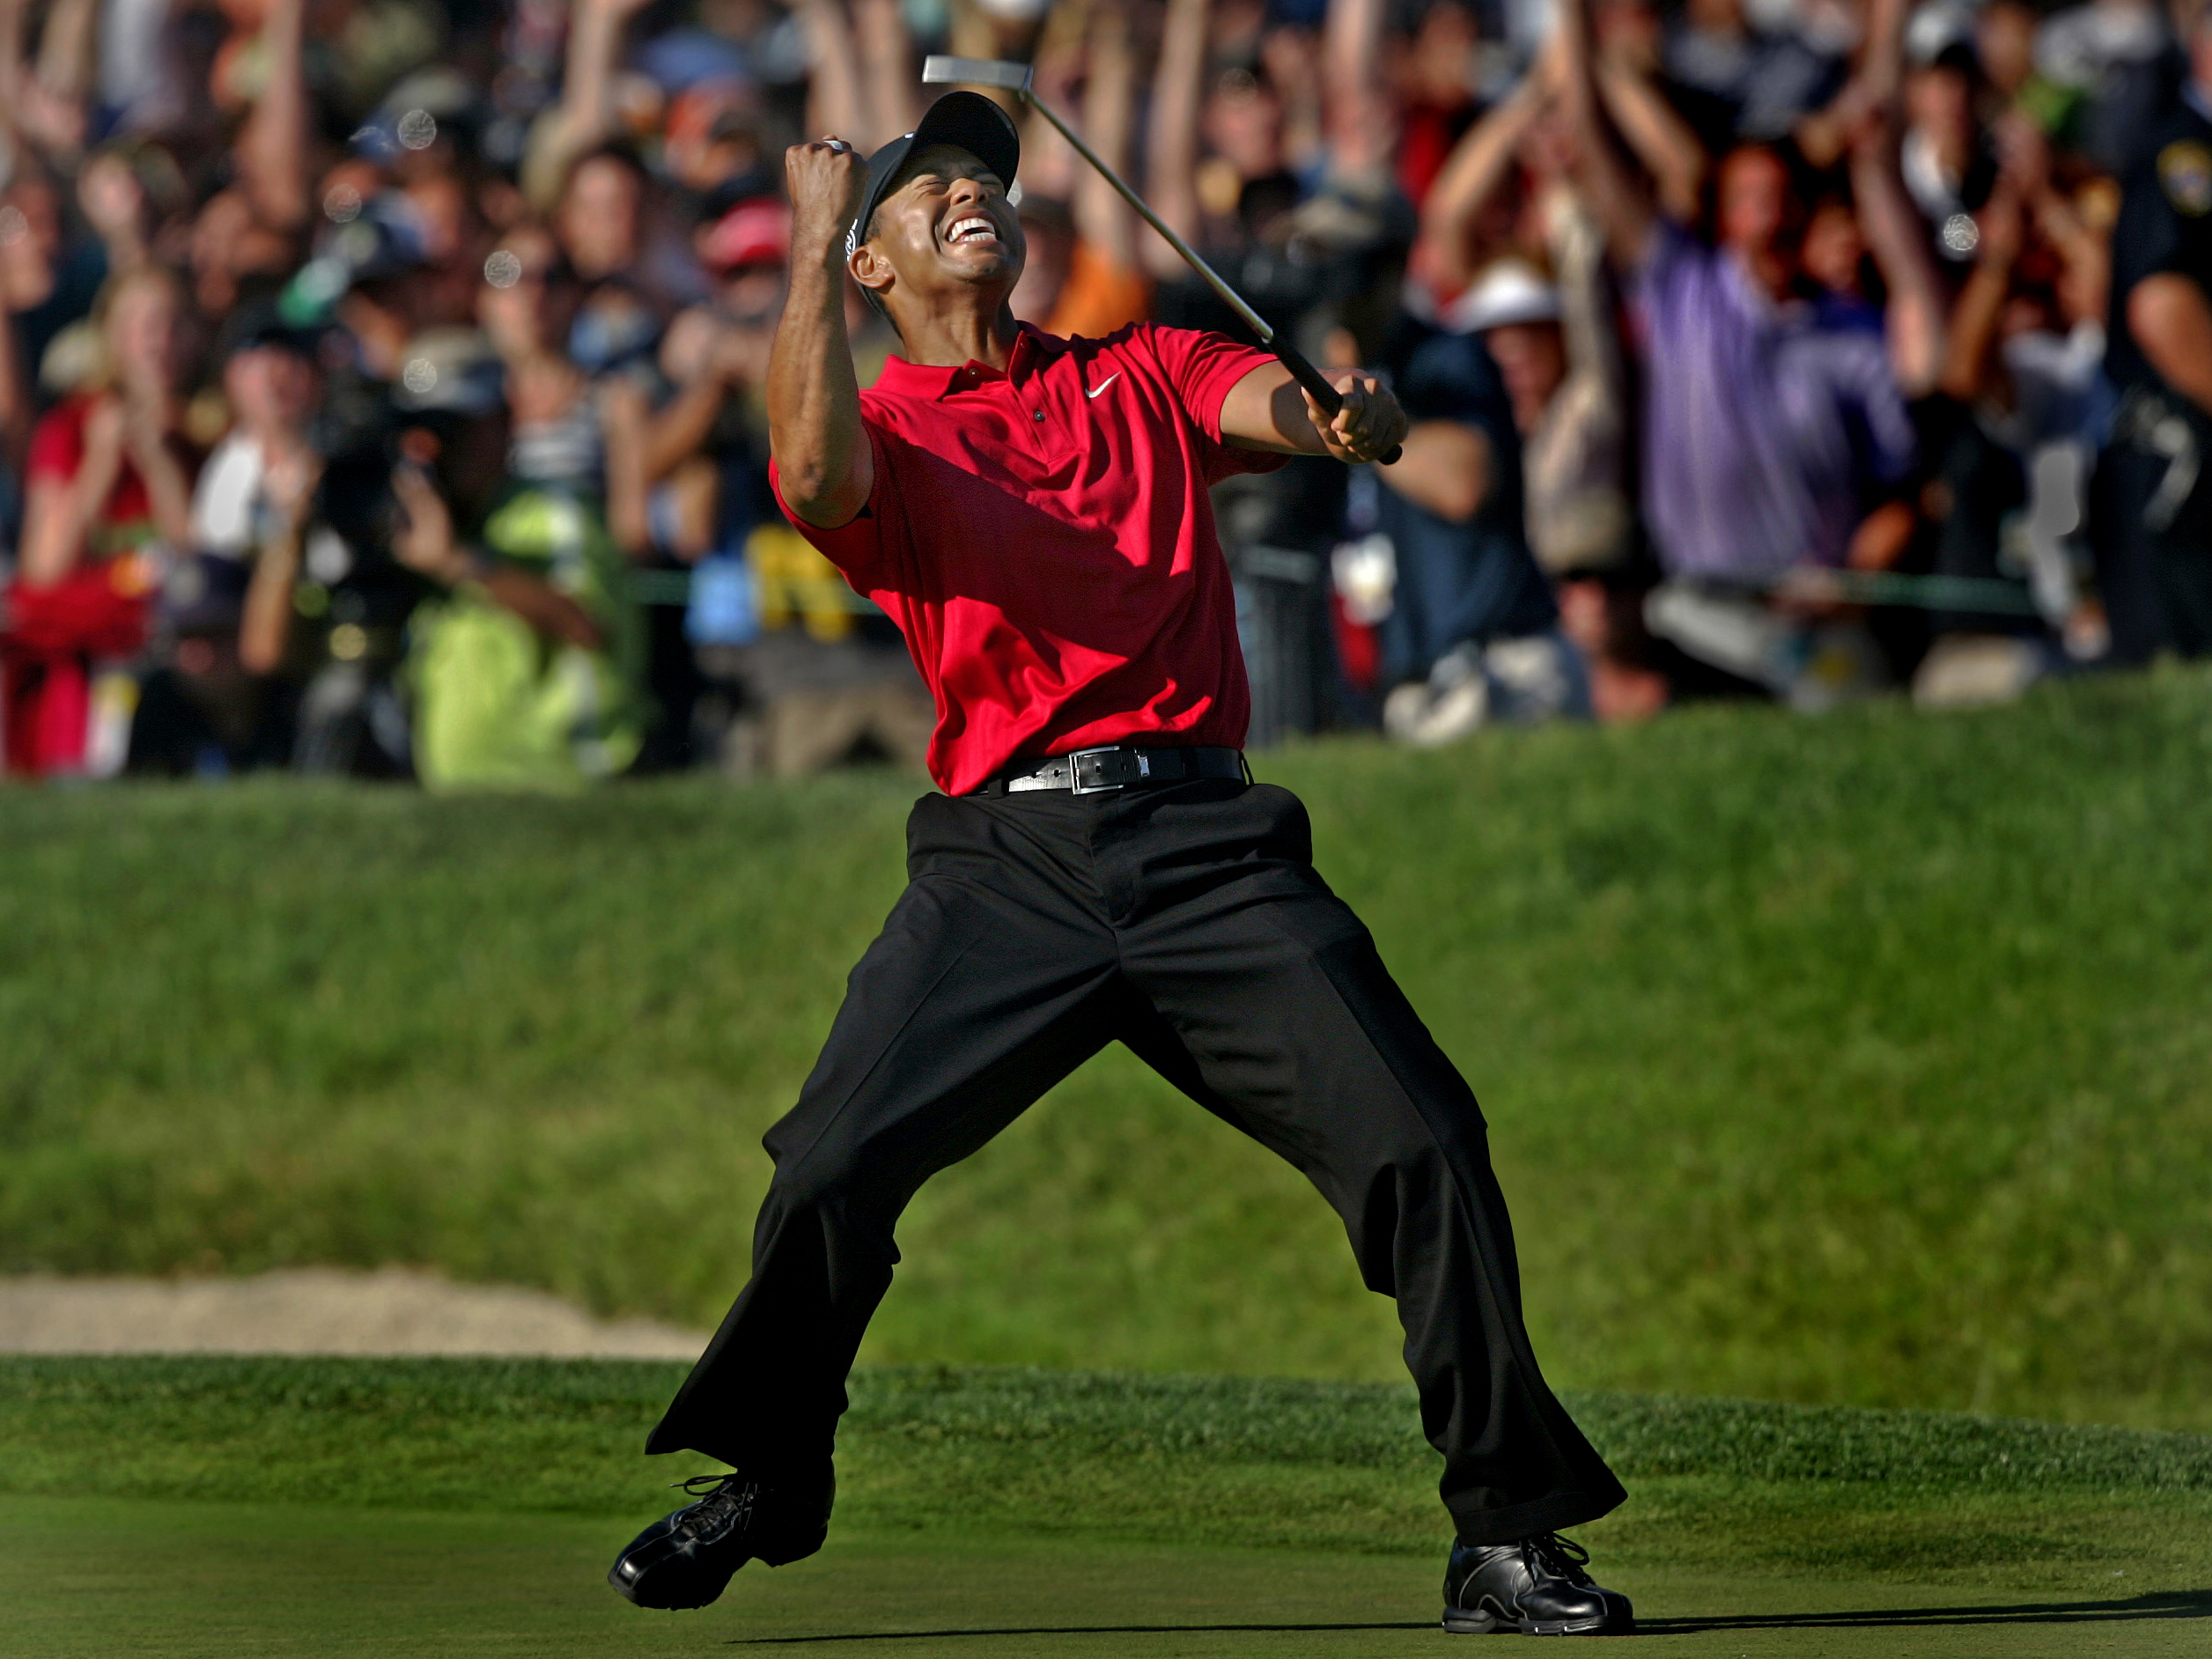 LA JOLLA, CA - JUNE 15, 2008: Tiger Woods celebrates on the eighteenth green after sinking a putt for a birdie and to force a playoff with Rocco Mediate during the final round of the U.S. Open at Torrey Pines in La Jolla of June 15, 2008. (Richard Hartog/ Los Angeles Times)